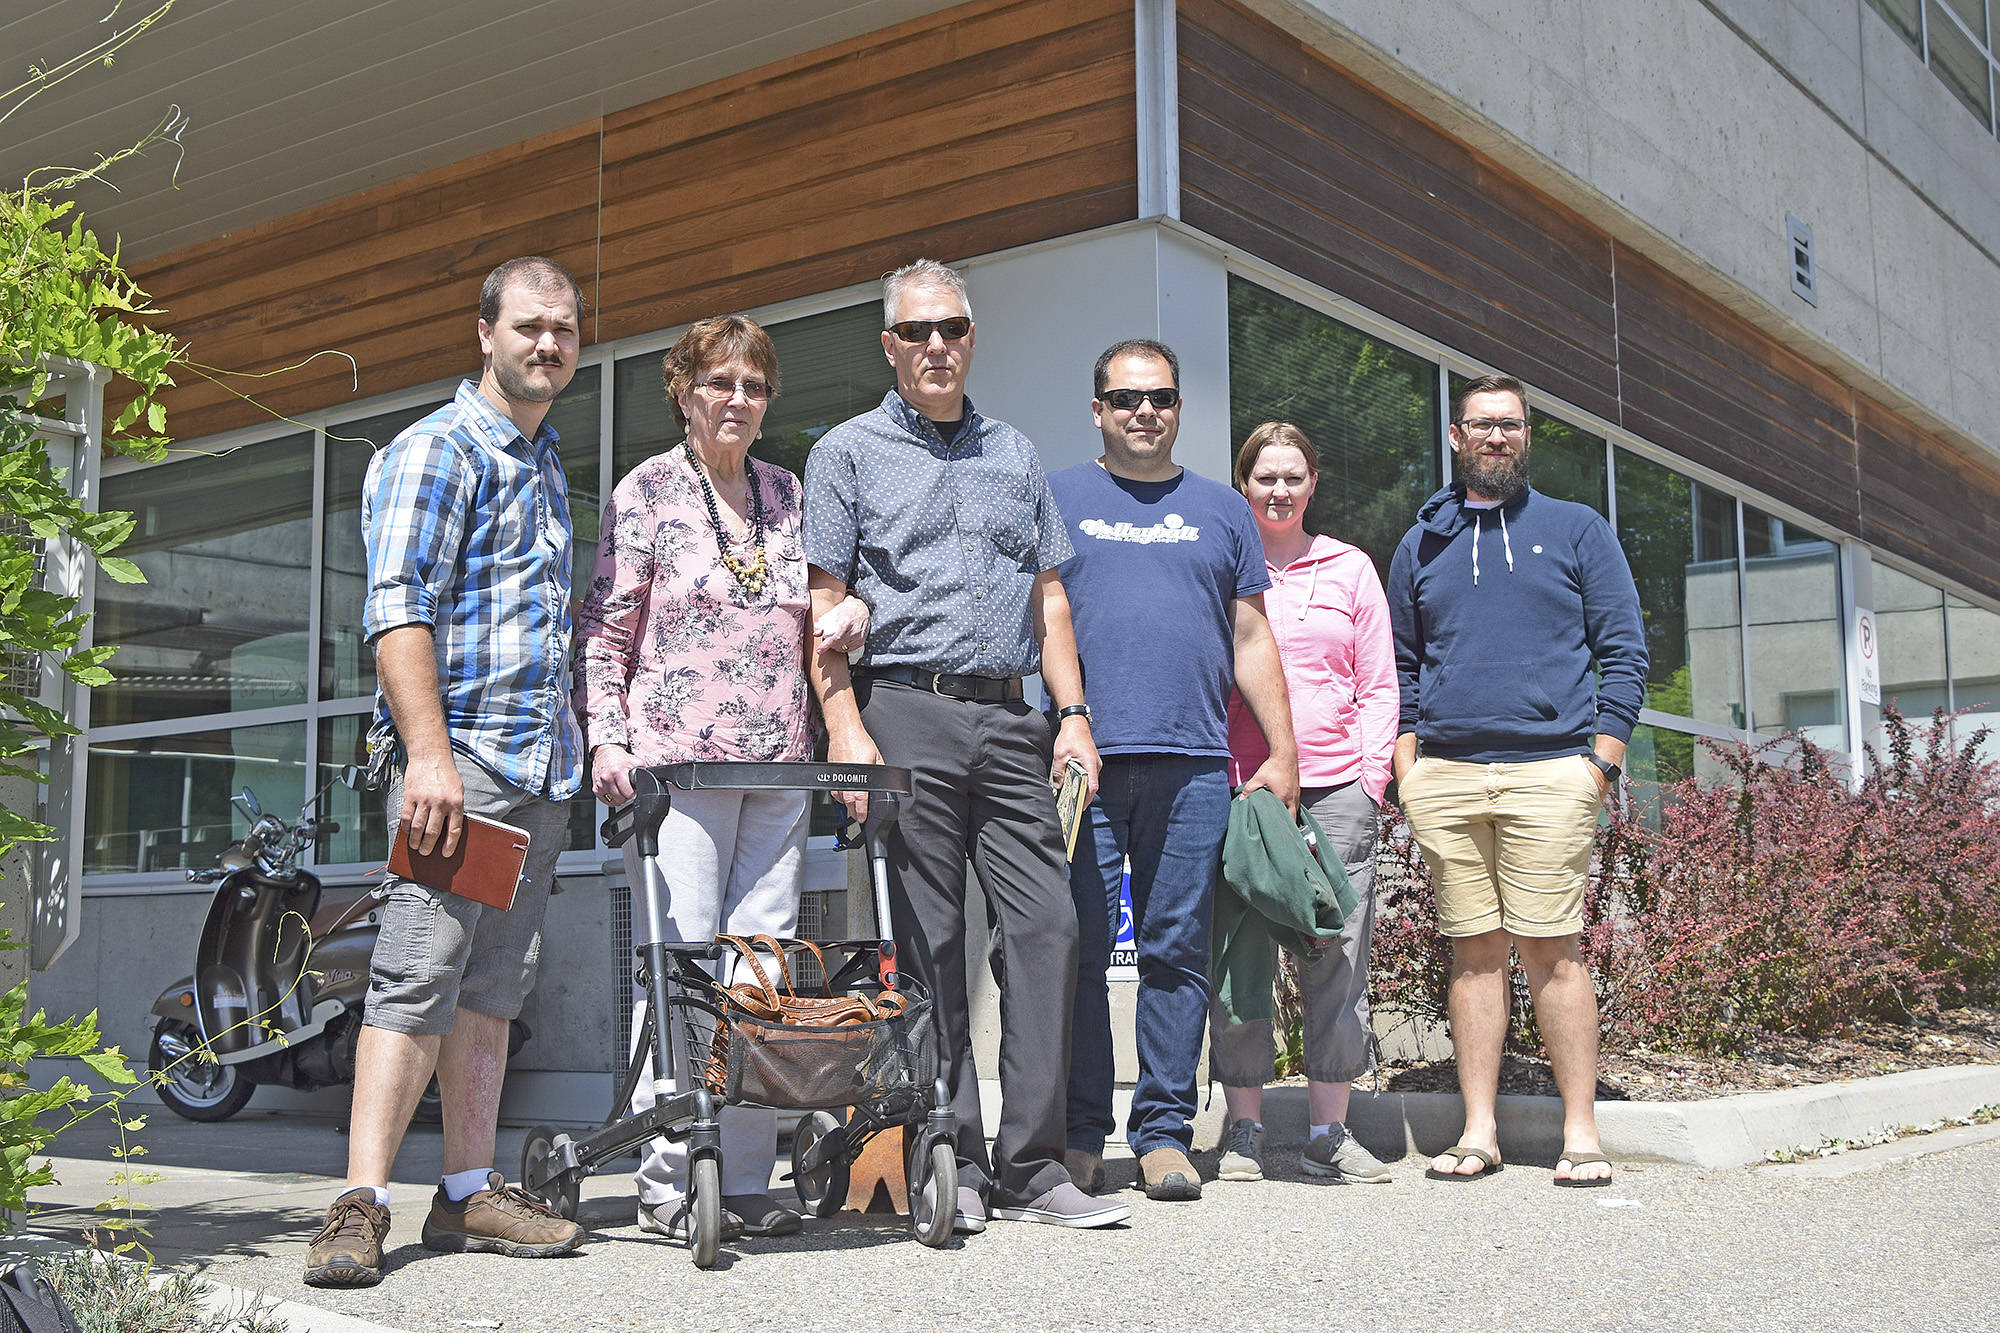 The Parmenter family stands outside the Salmon Arm Law Courts on Tuesday, July 22, 2020, while attending the murder trial of Matrix Gathergood who is facing a murder charge for the killing of Gordon Parmenter. From left, Gordon's grandson Jonathan, his spouse Peggy, his sons David and Tony, Tony's spouse and Gord's daughter-in-law Melissa, and Gord's grandson Lucas. (Martha Wickett - Salmon Arm Observer)